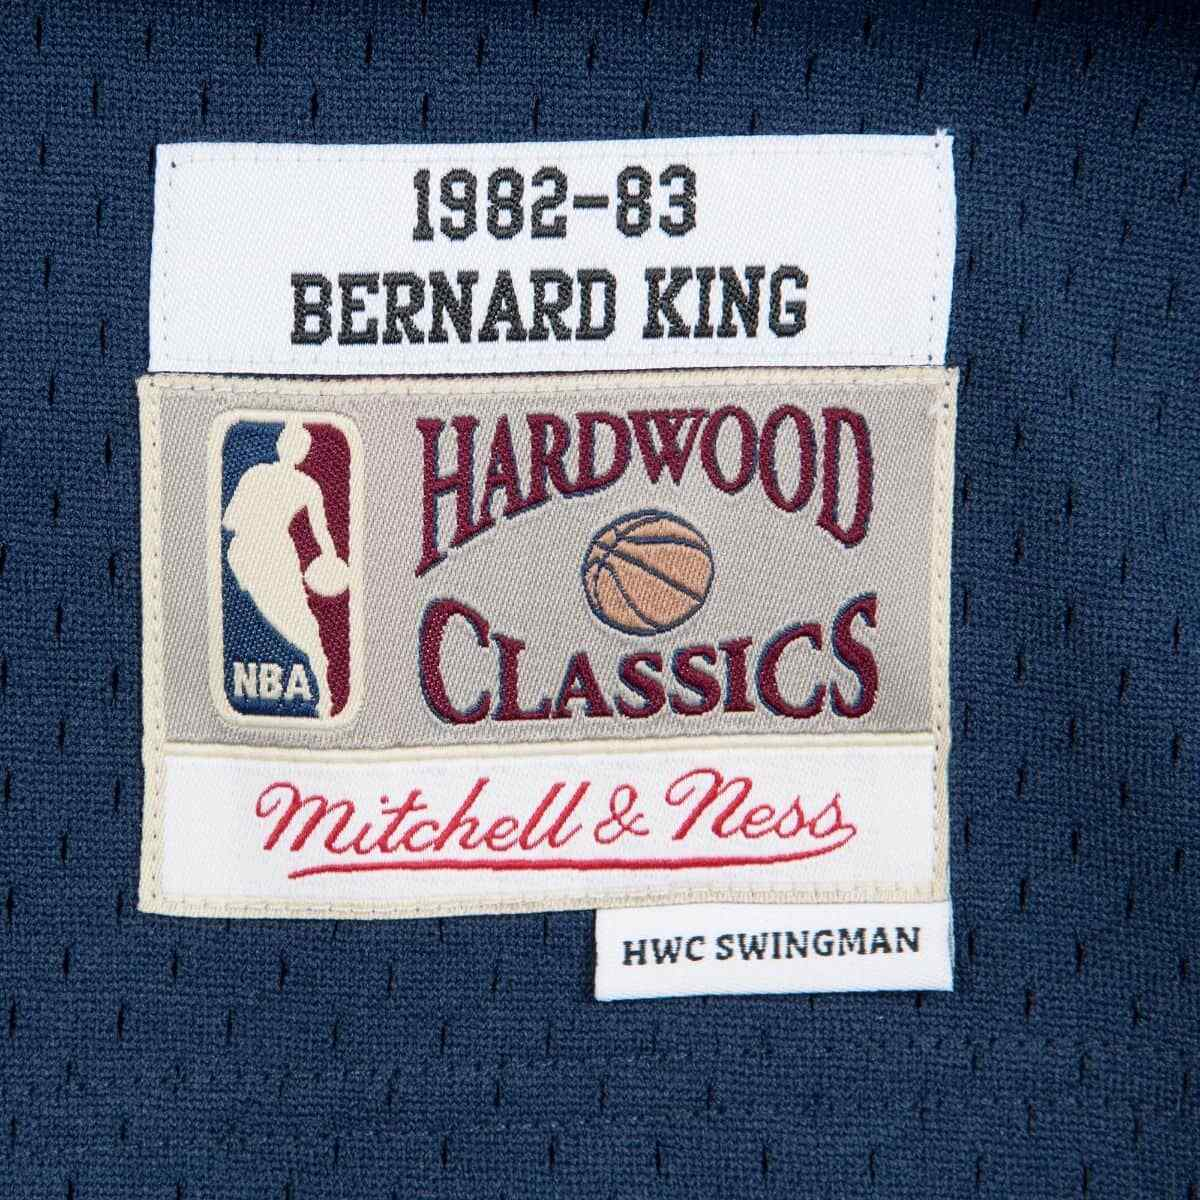 2ab058e81 Mitchell & Ness New York Knicks 1982-83 #30 Bernard King Swingman Navy  Jersey. ** FREE DELIVERY ON THIS JERSEY **